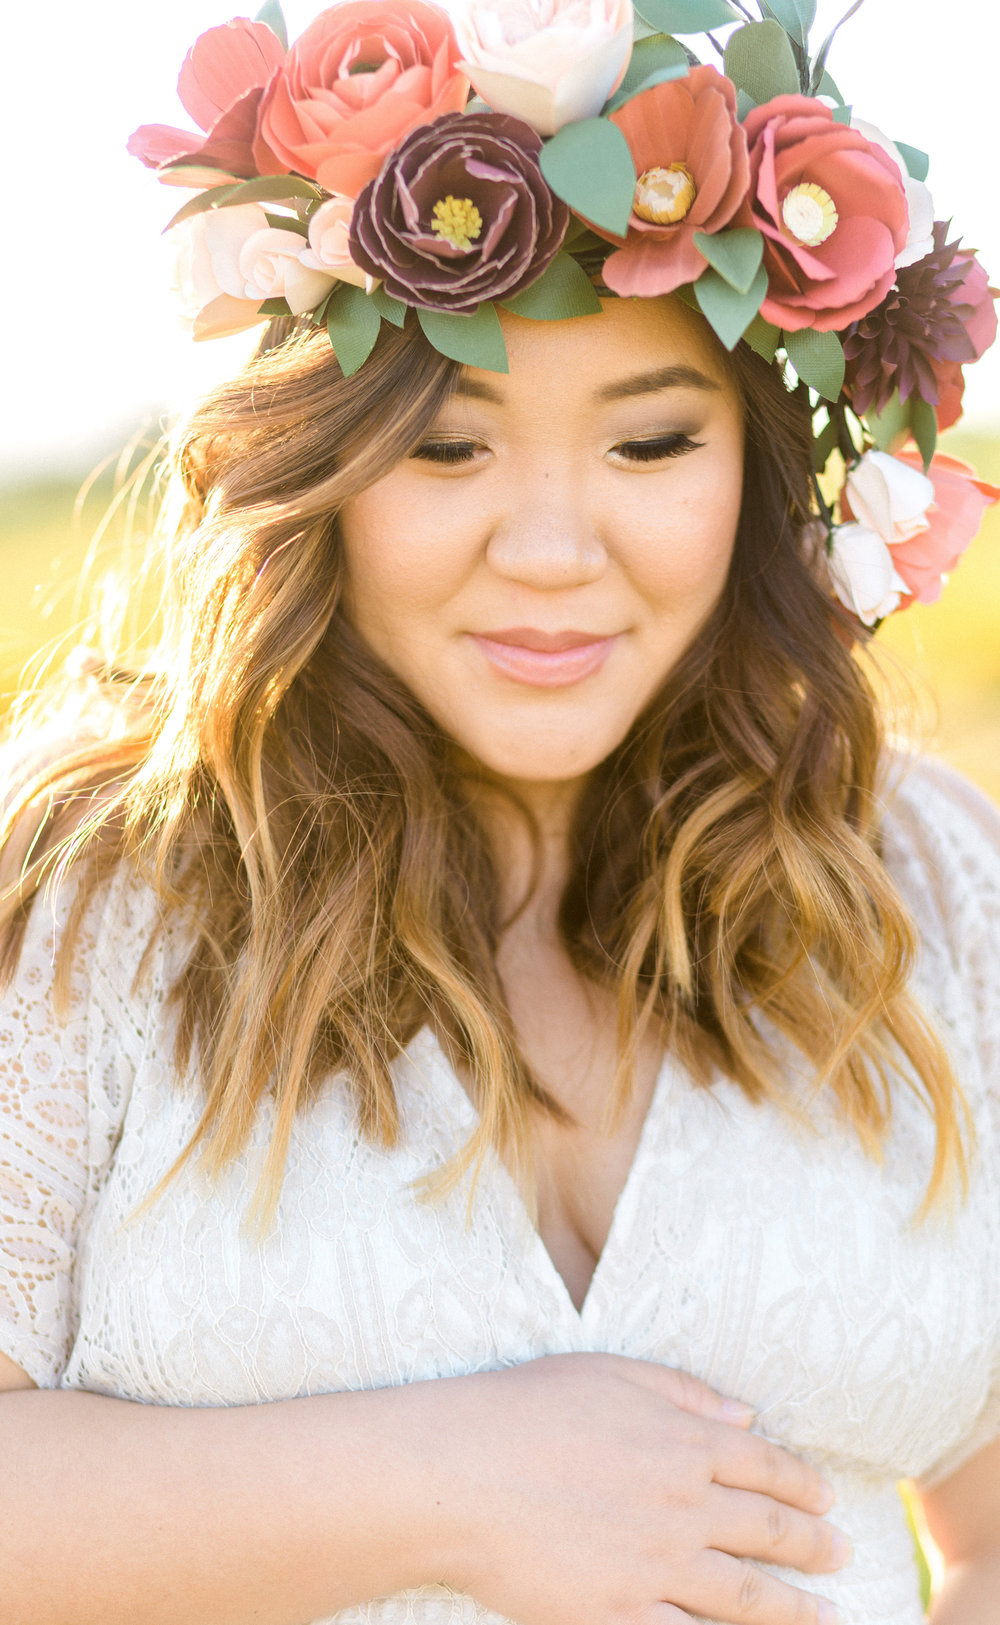 Blog handmade by sara kim of course i had to wear this oversized paper flower crown to represent i sooooo loved the poppy fields and it was the perfect spot for us since i just izmirmasajfo